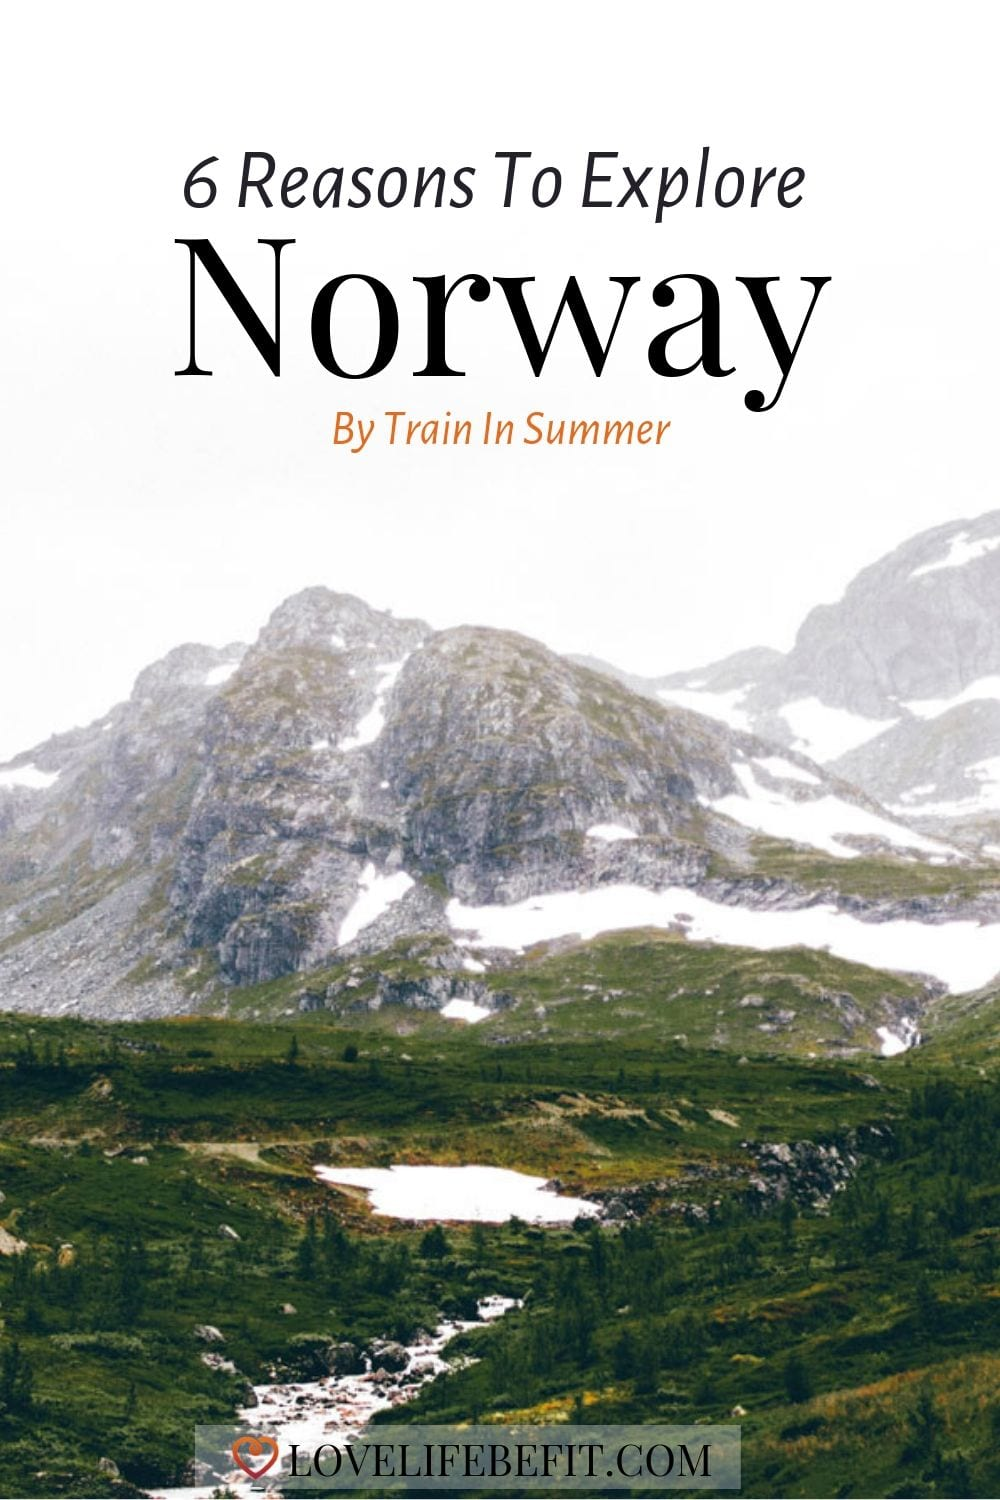 Norway is notorious for being an expensive place to visit but taking the train with a rail pass can be an affordable option. Read on for 6 must-do ideas for exploring this magical country. #traveldestinations #norway